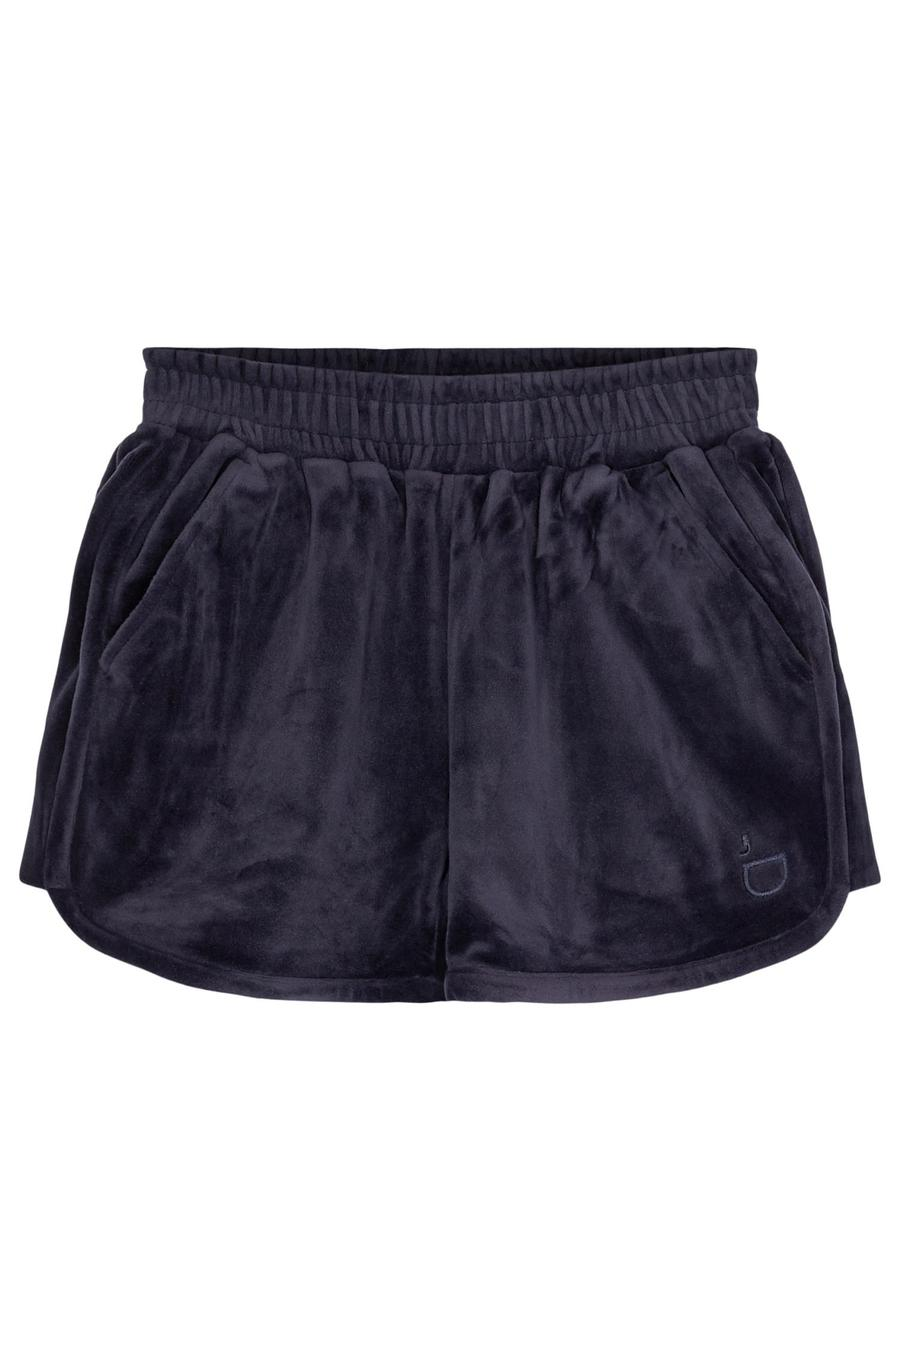 G Frances Shorts - Navy